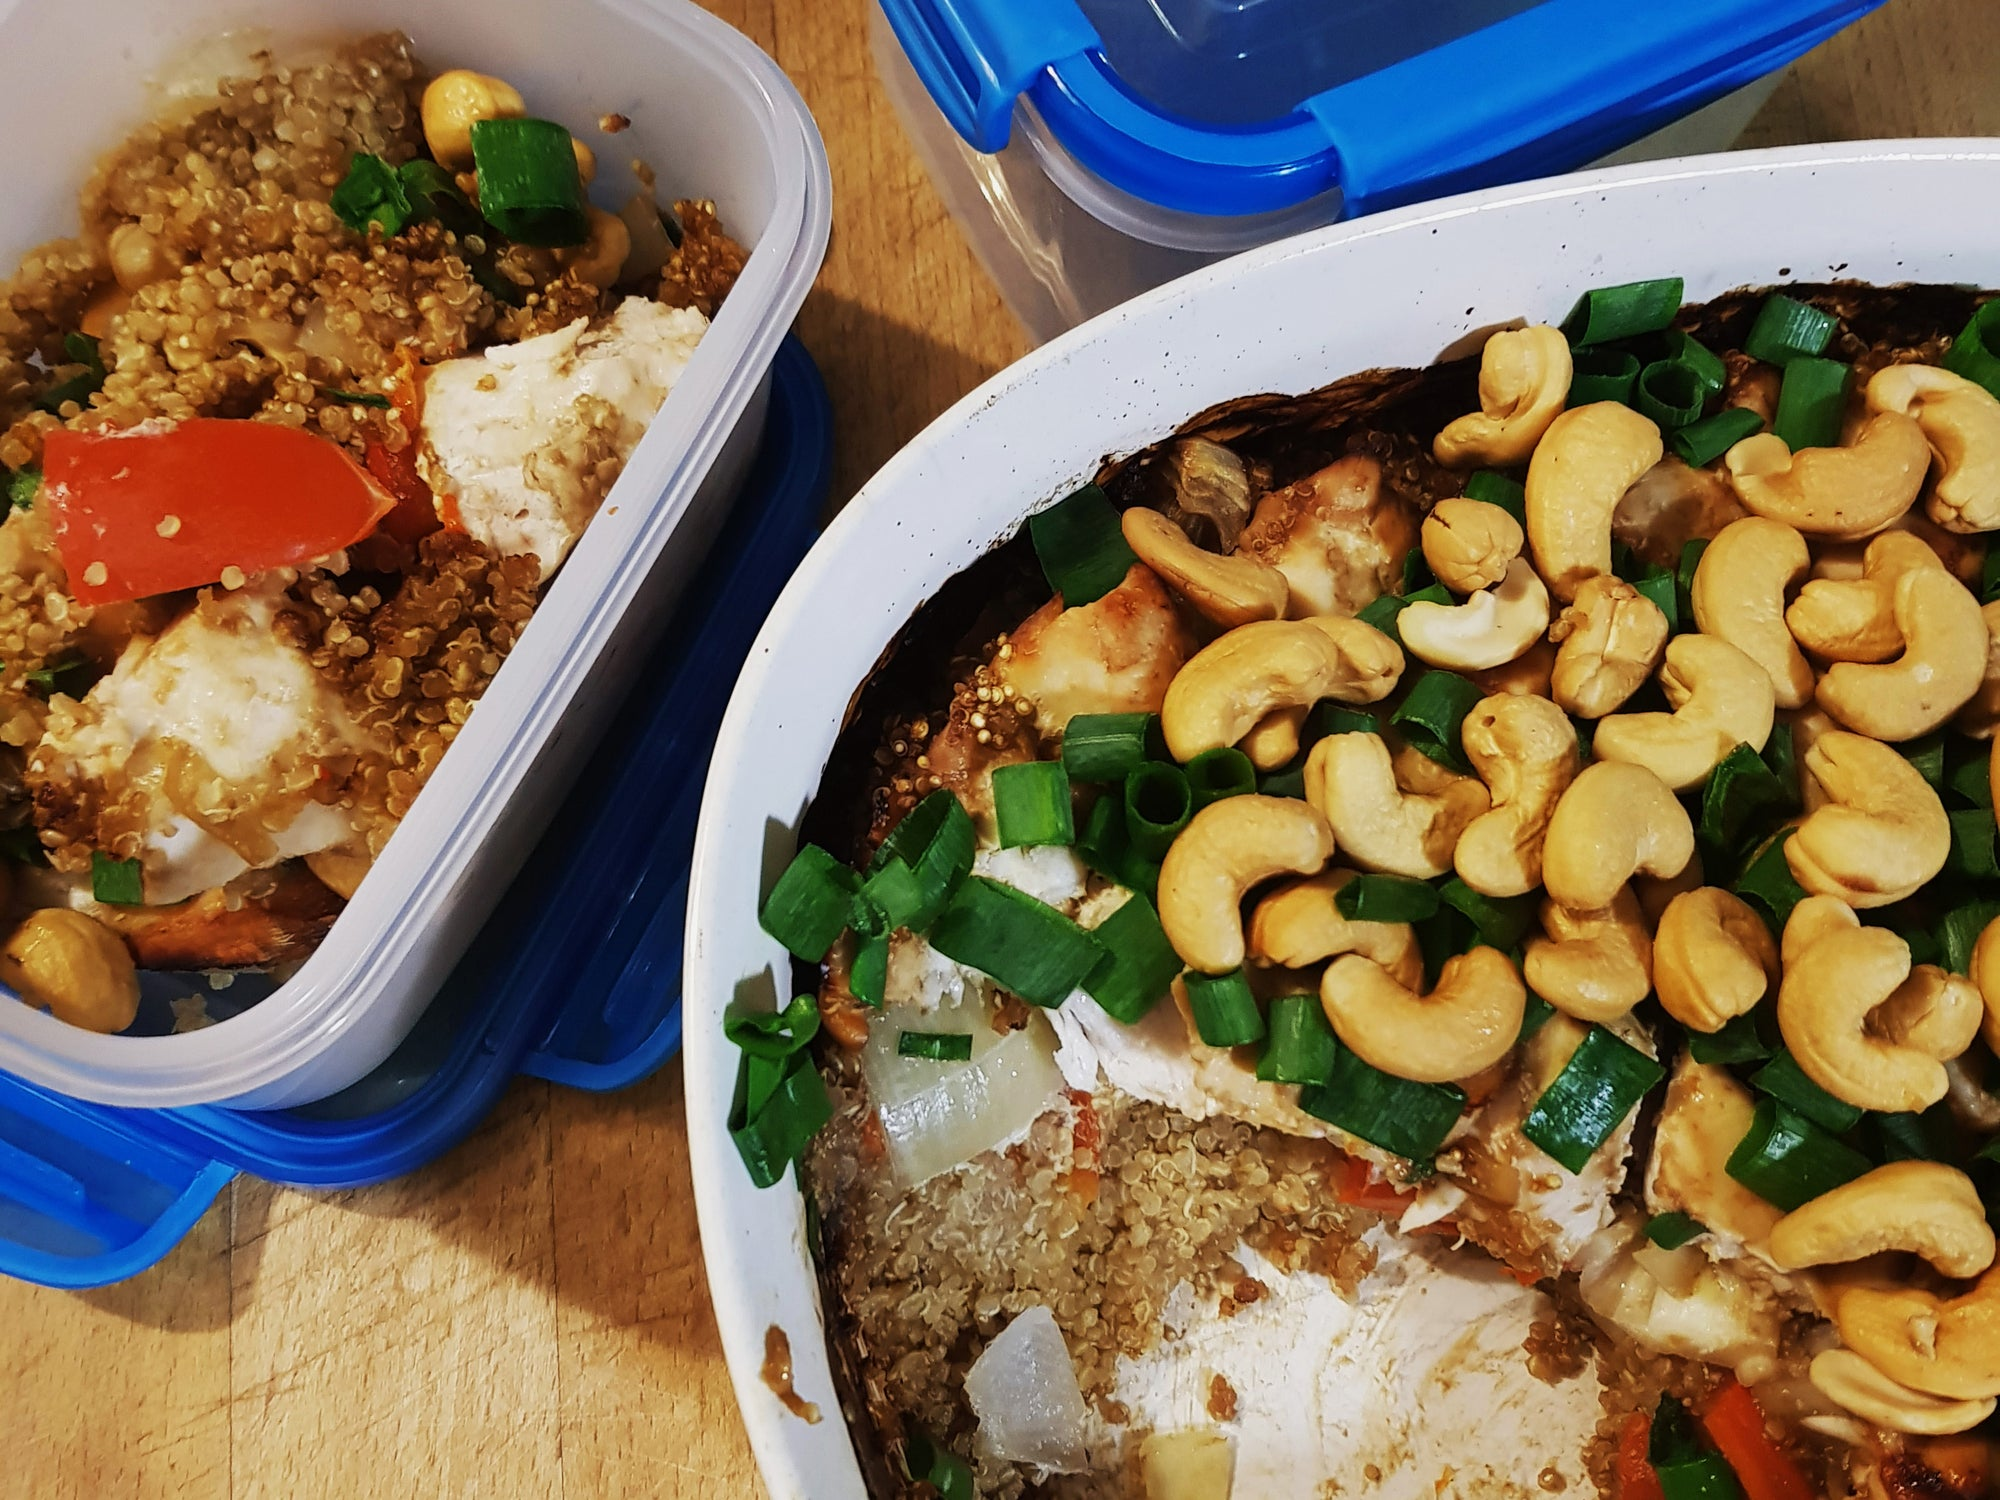 Meal Prep Sunday - Quinoa Cashew Chicken Bake